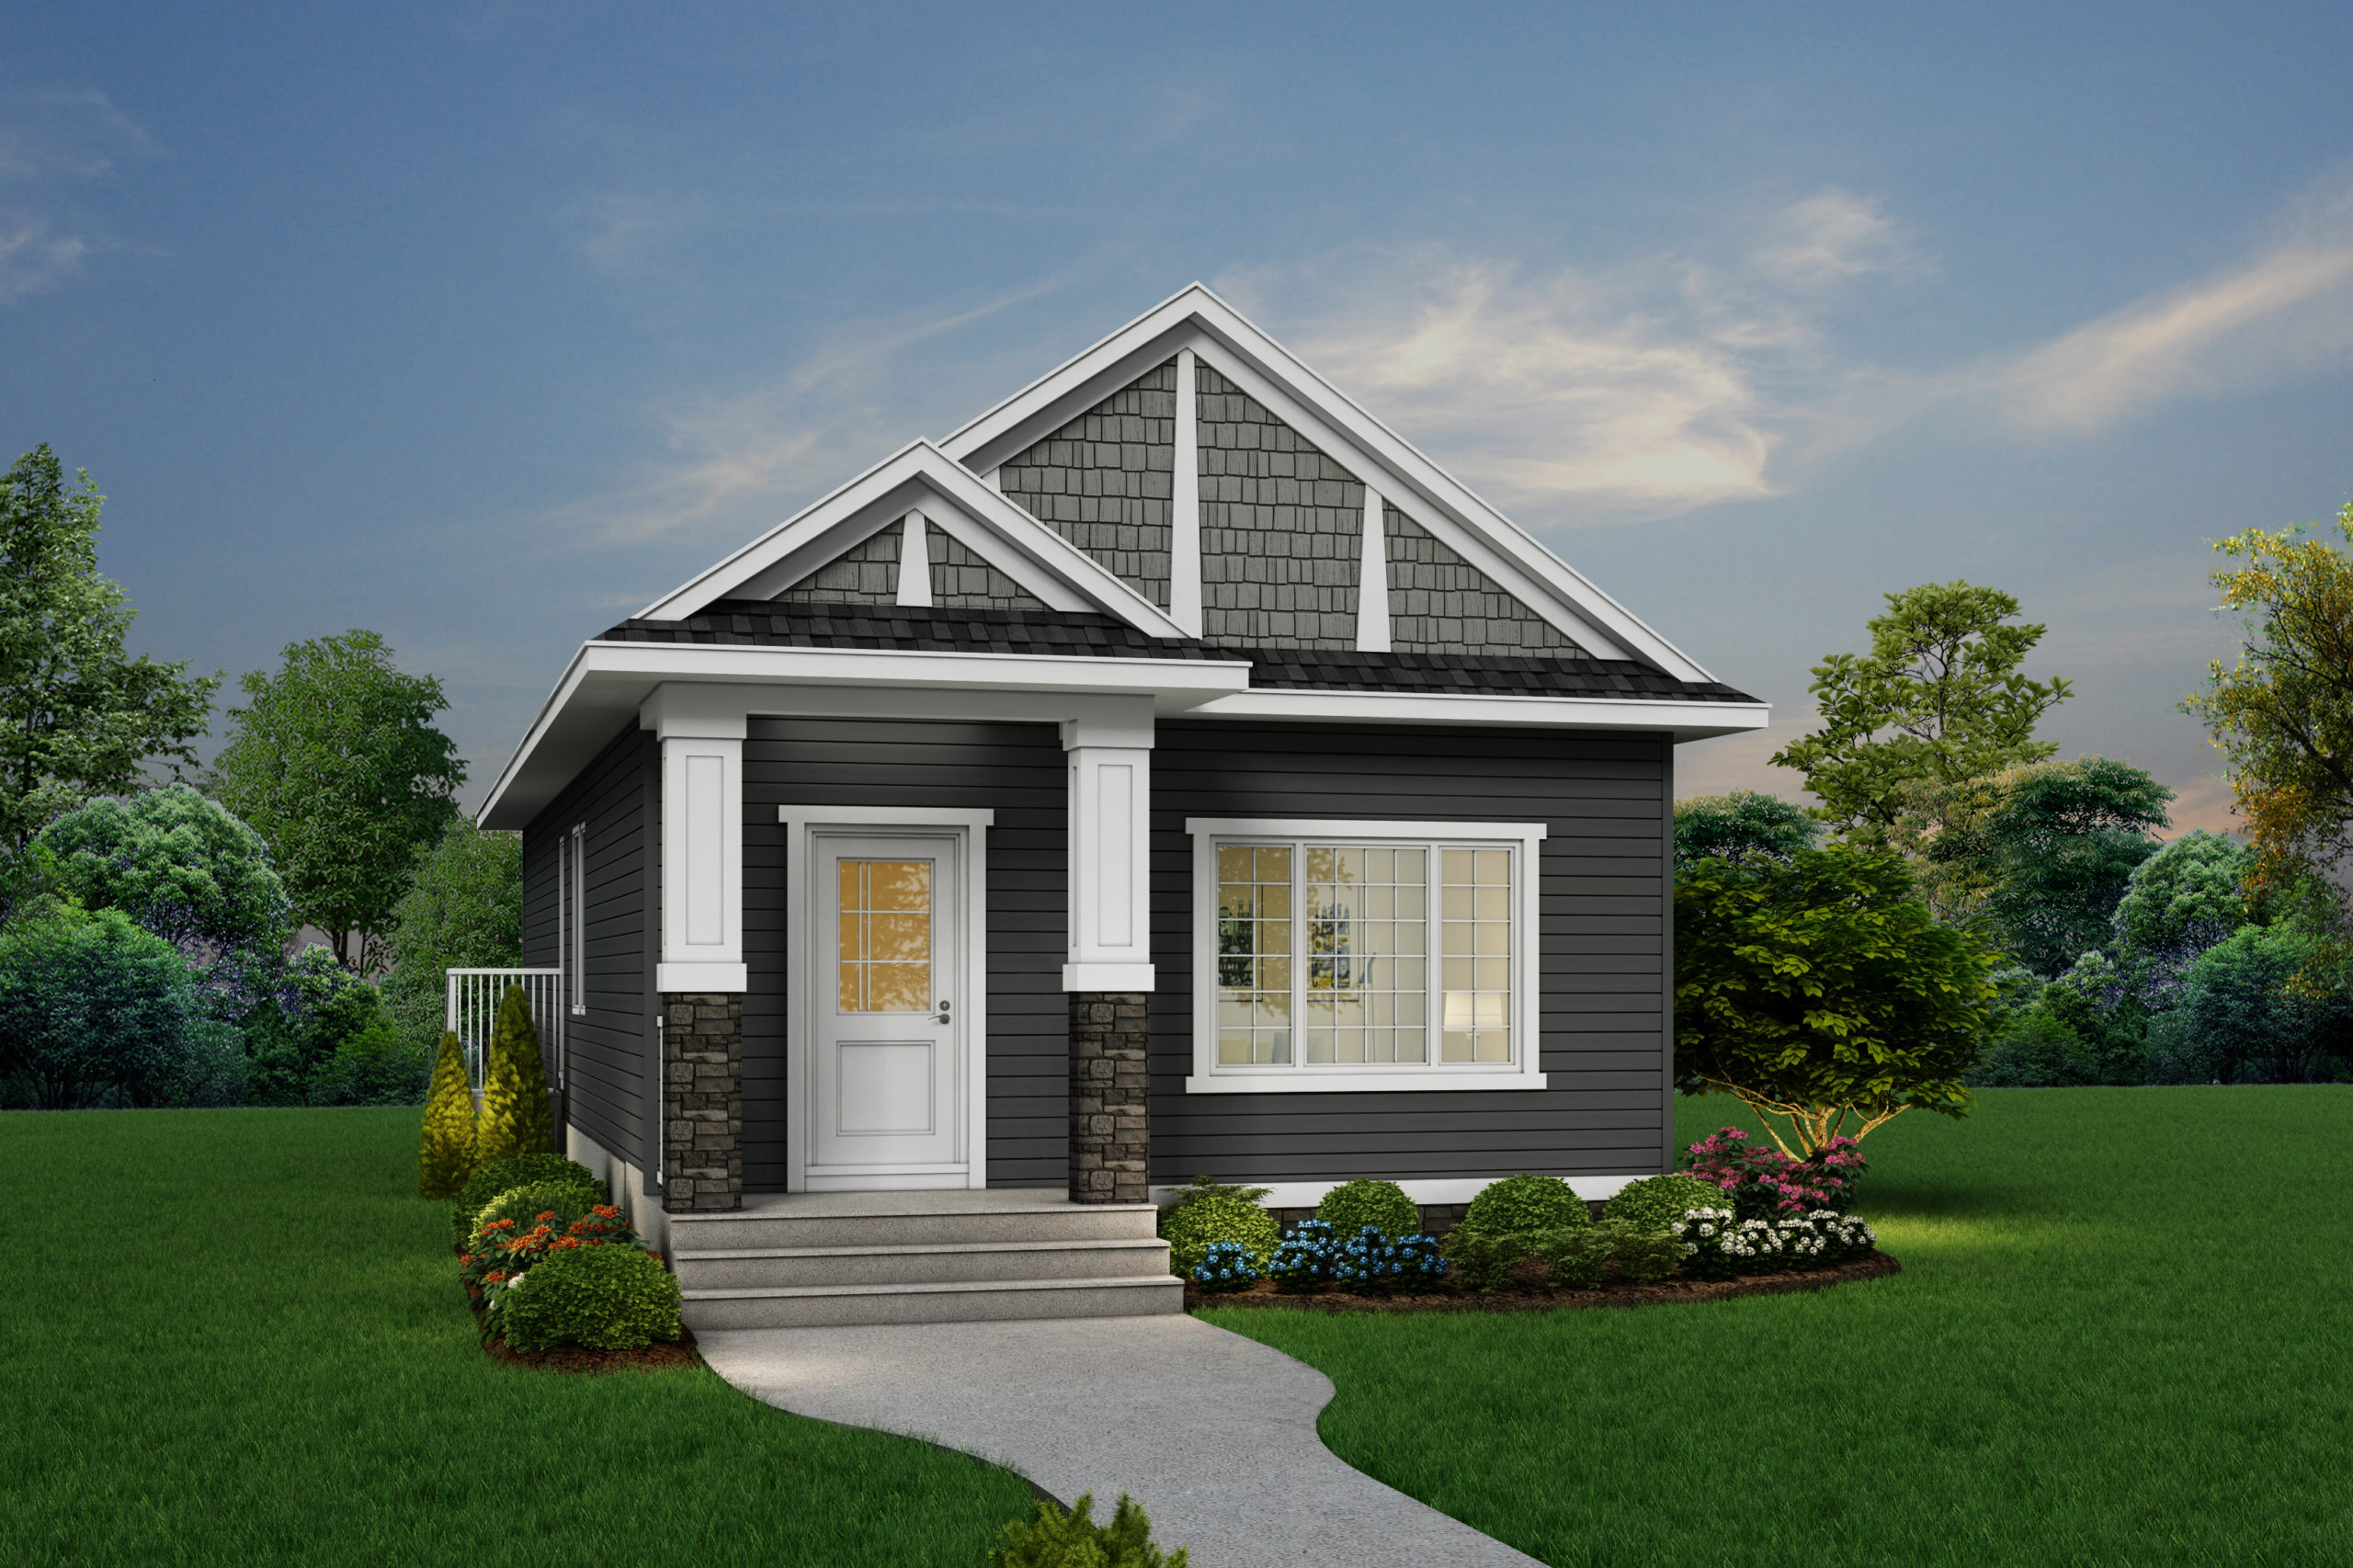 A modern prairie bungalow home with detached garage features white window trim, dark grey siding, including rock accents